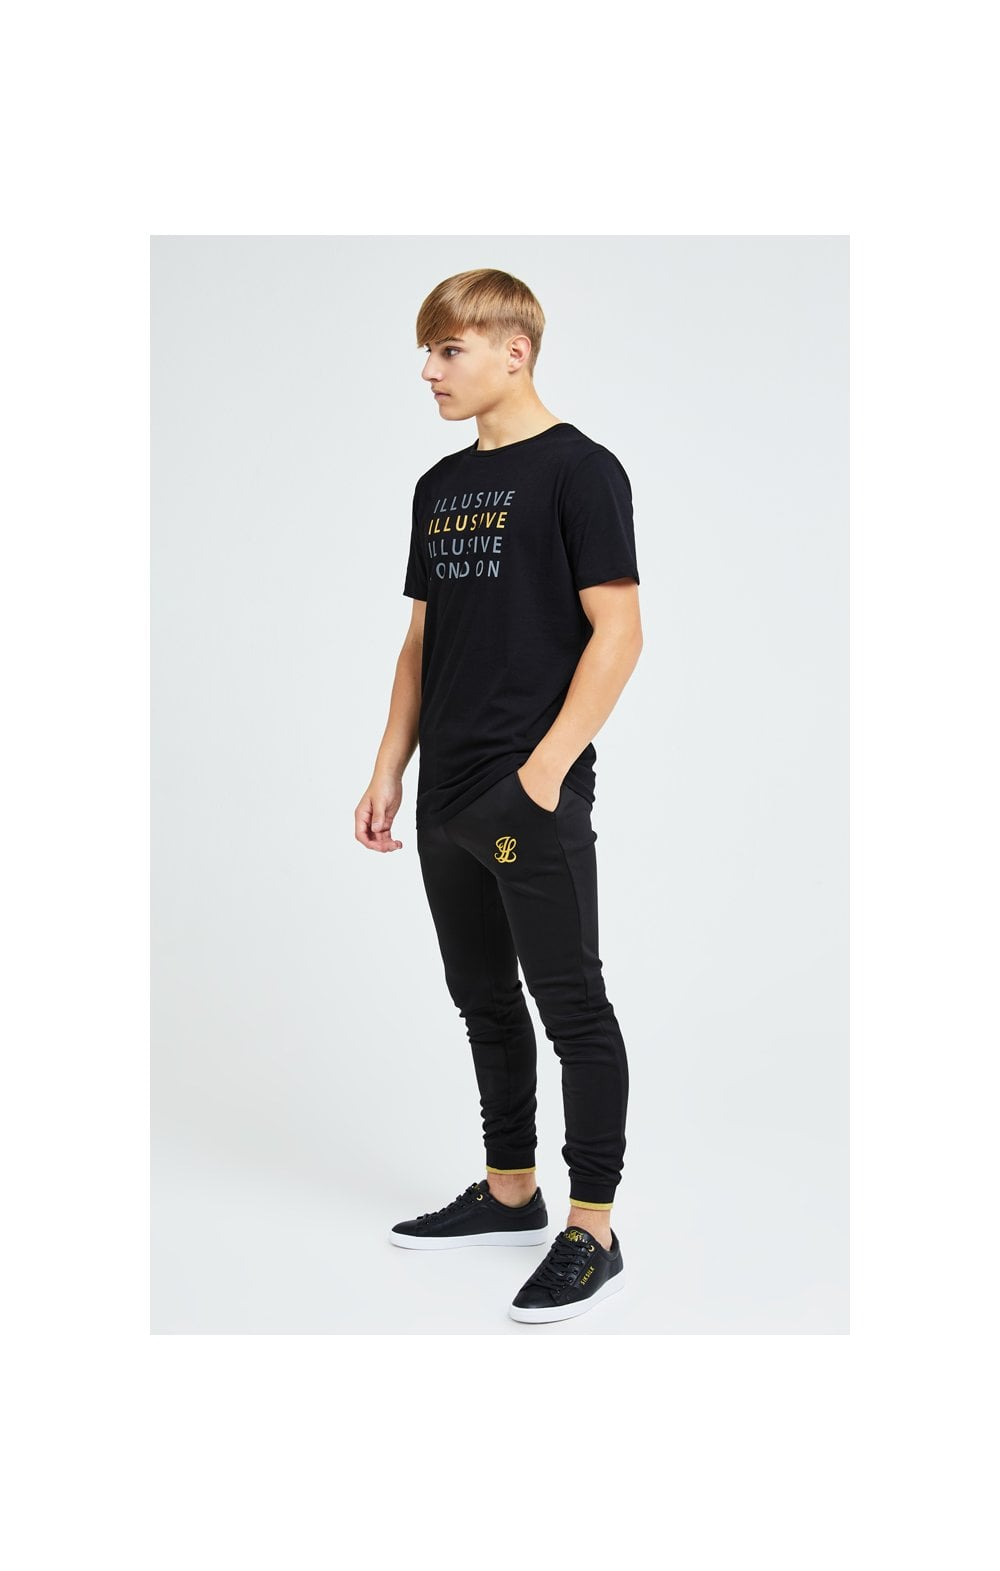 Illusive London Sovereign Tee - Black & Gold (2)